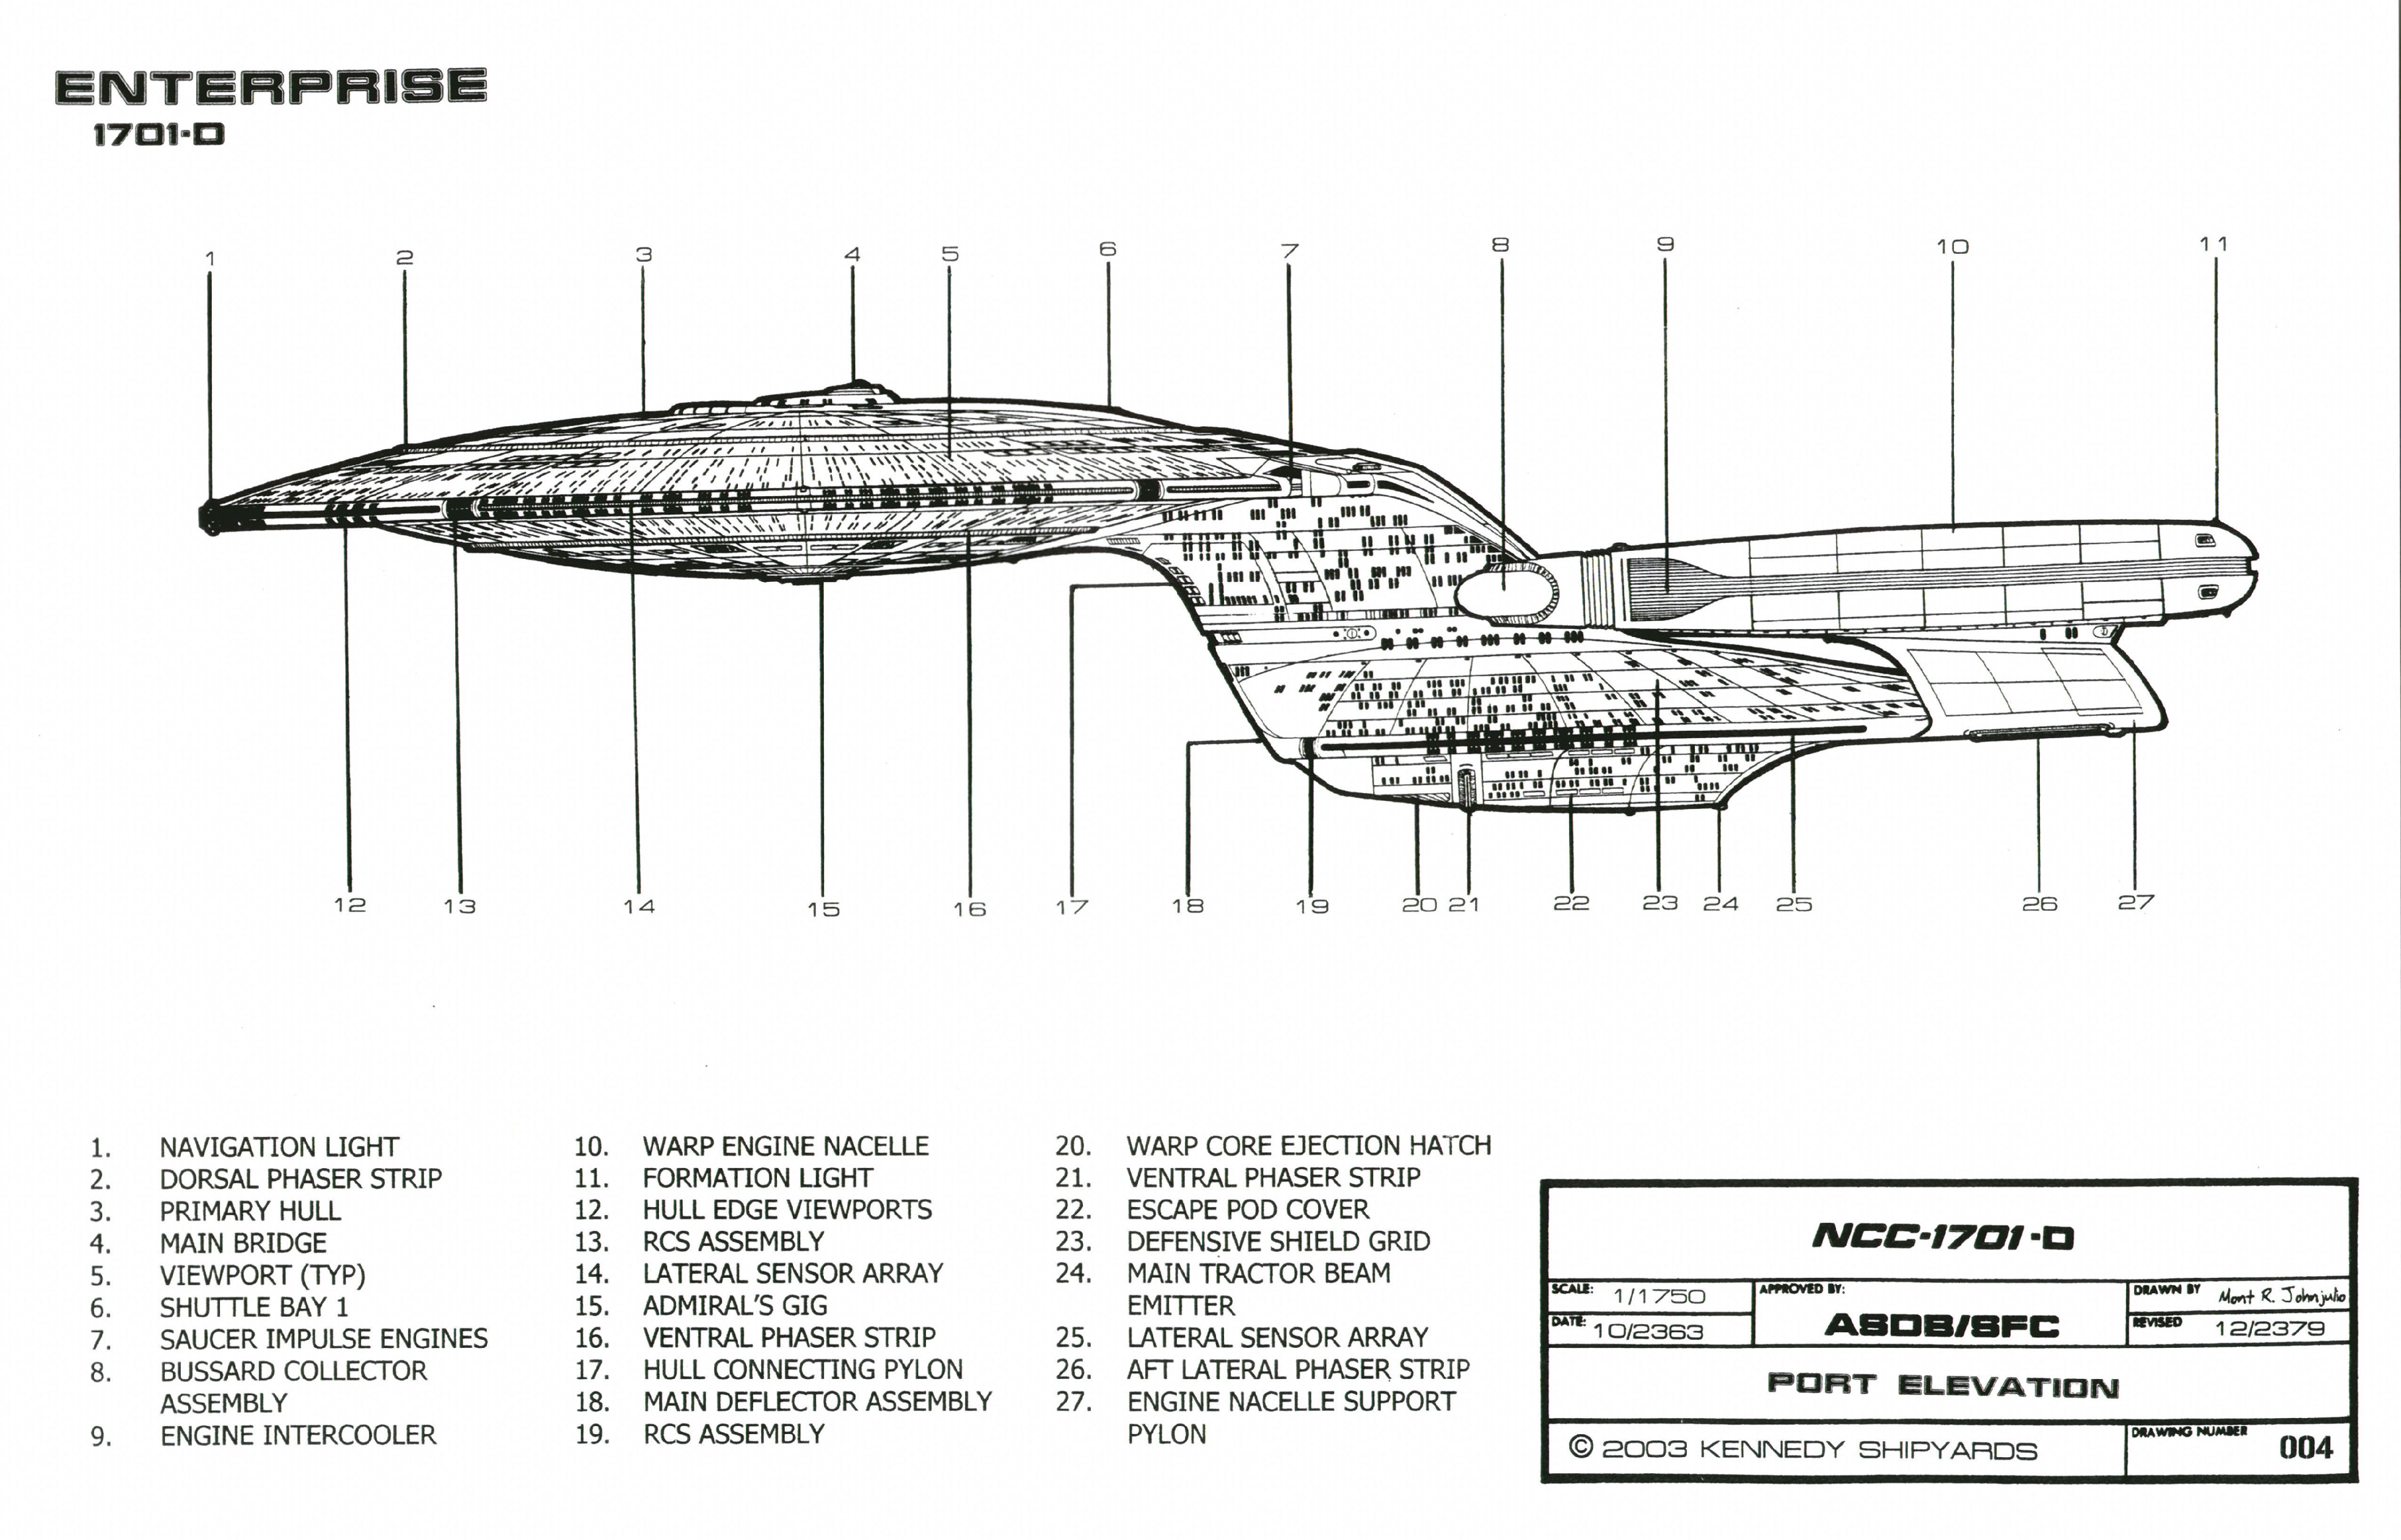 Icars Schematic Of Saucer Section Of U.s.s. Enterprise Ncc